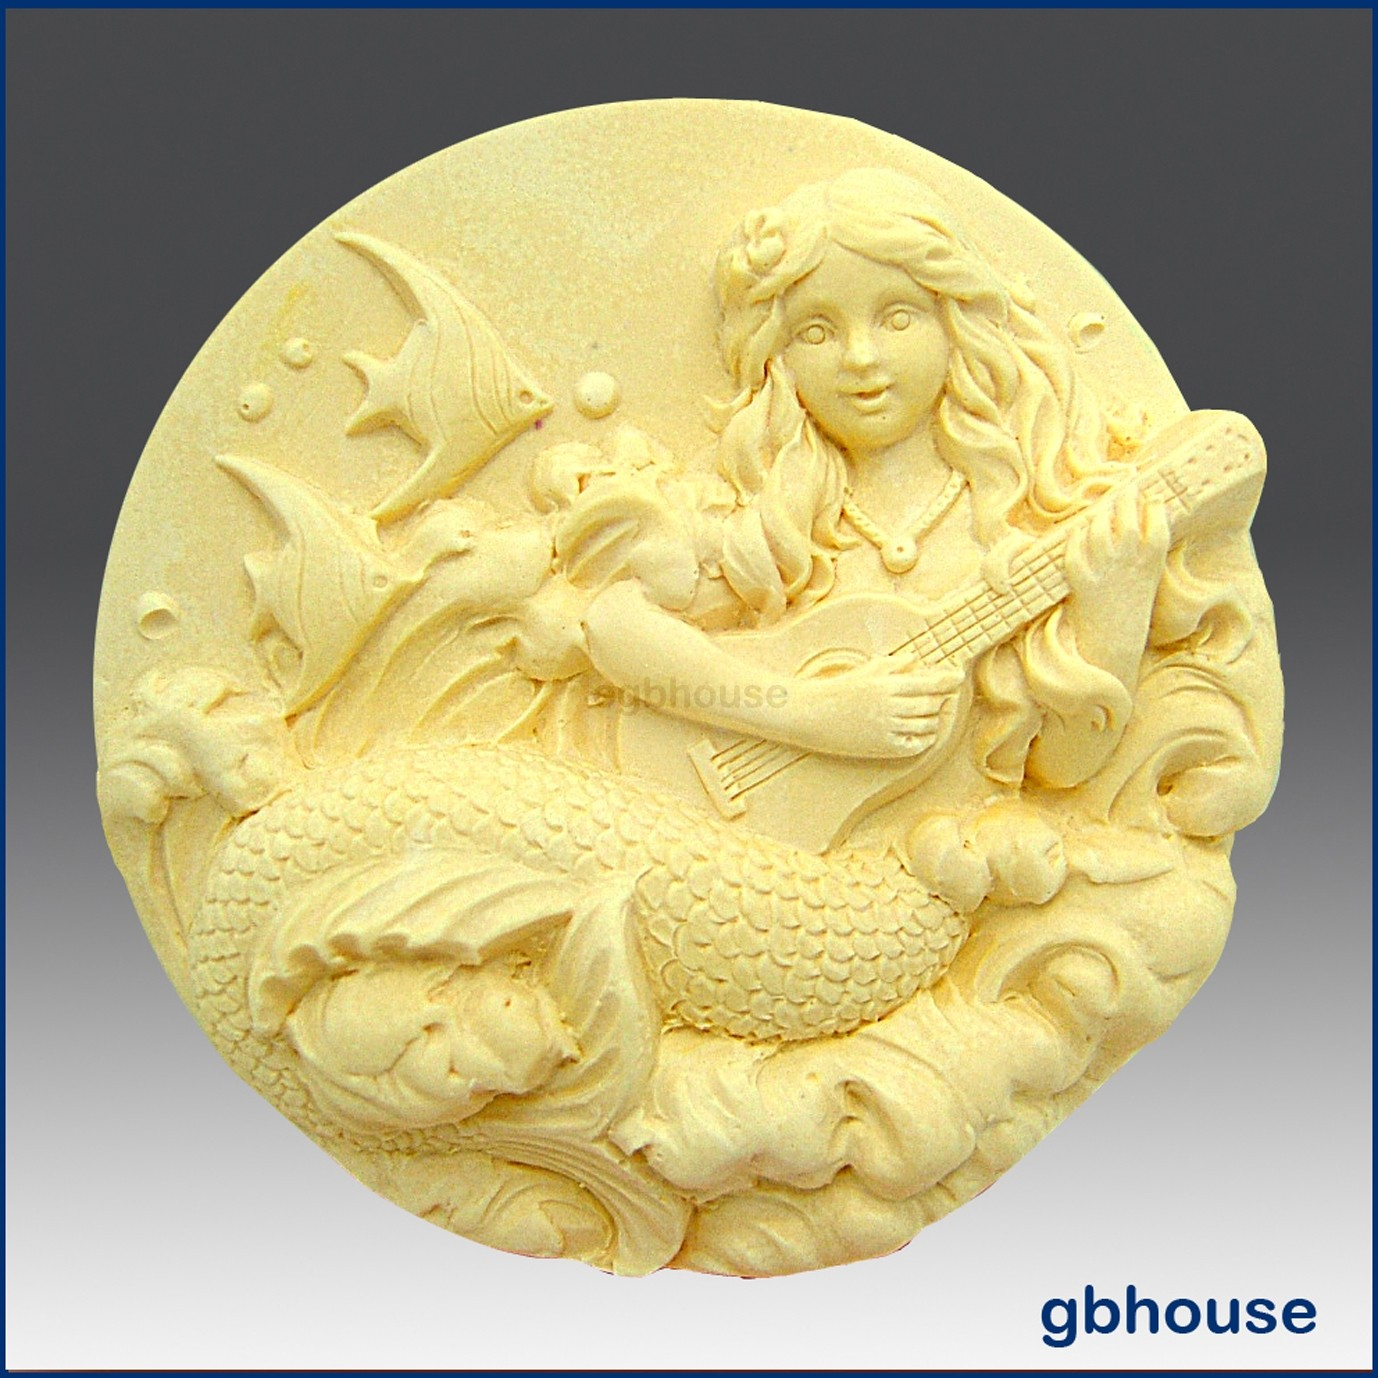 Giselle, Mermaid of the Guitar - Detail of high relief sculpture